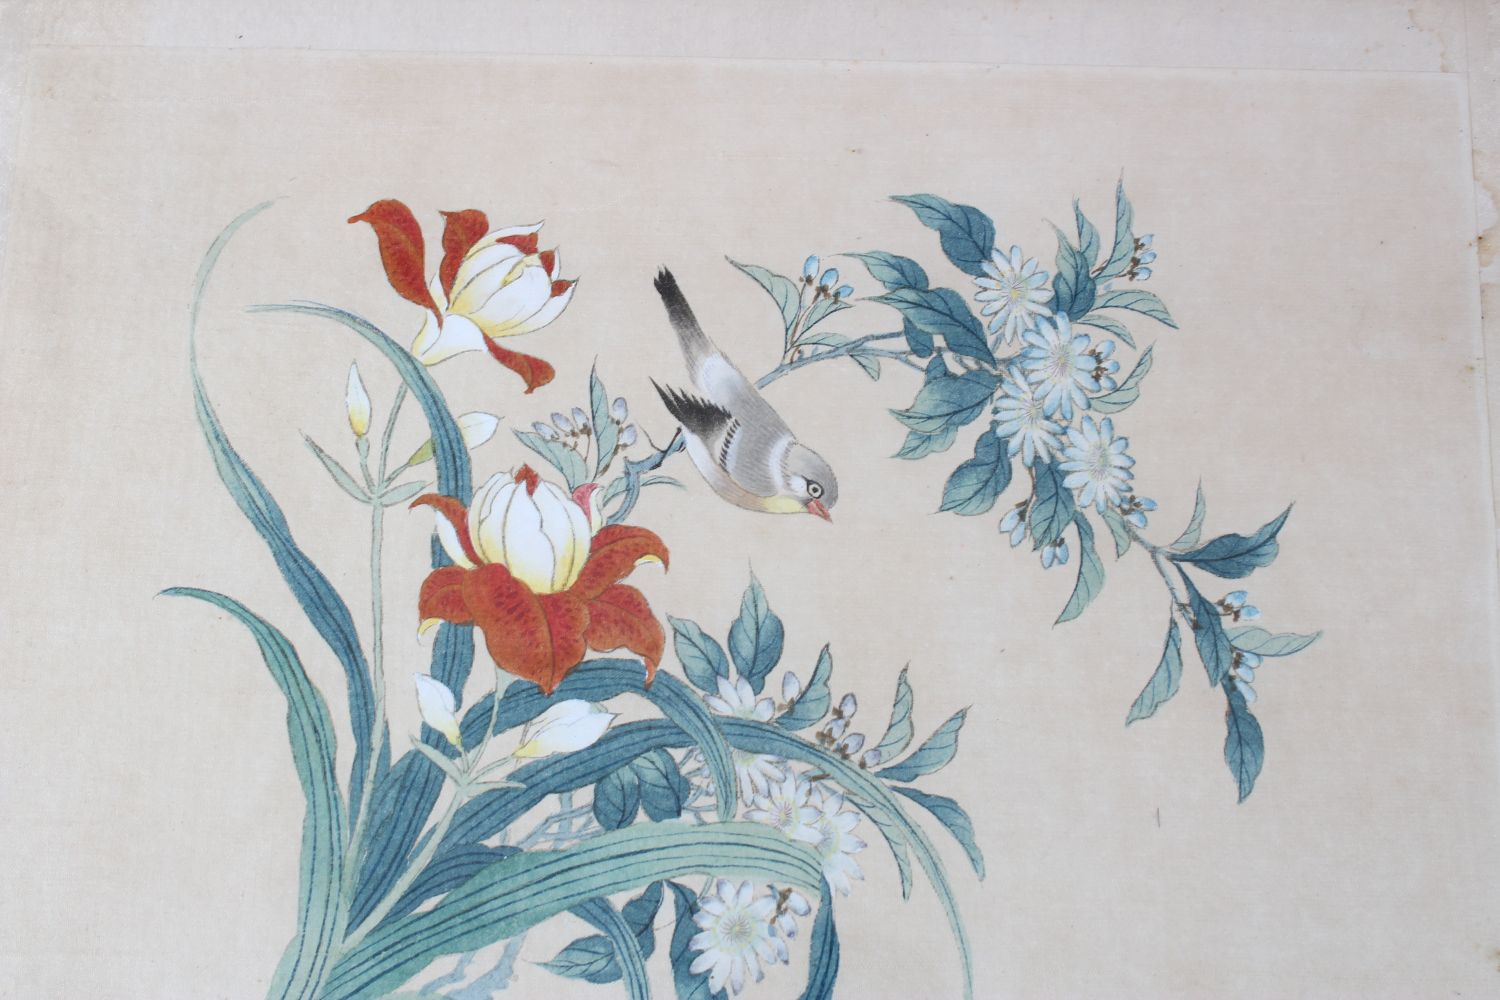 Lot 321 - A GROUP OF SEVEN CHINESE PAINTINGS ON SILK, various subject matters to include birds in